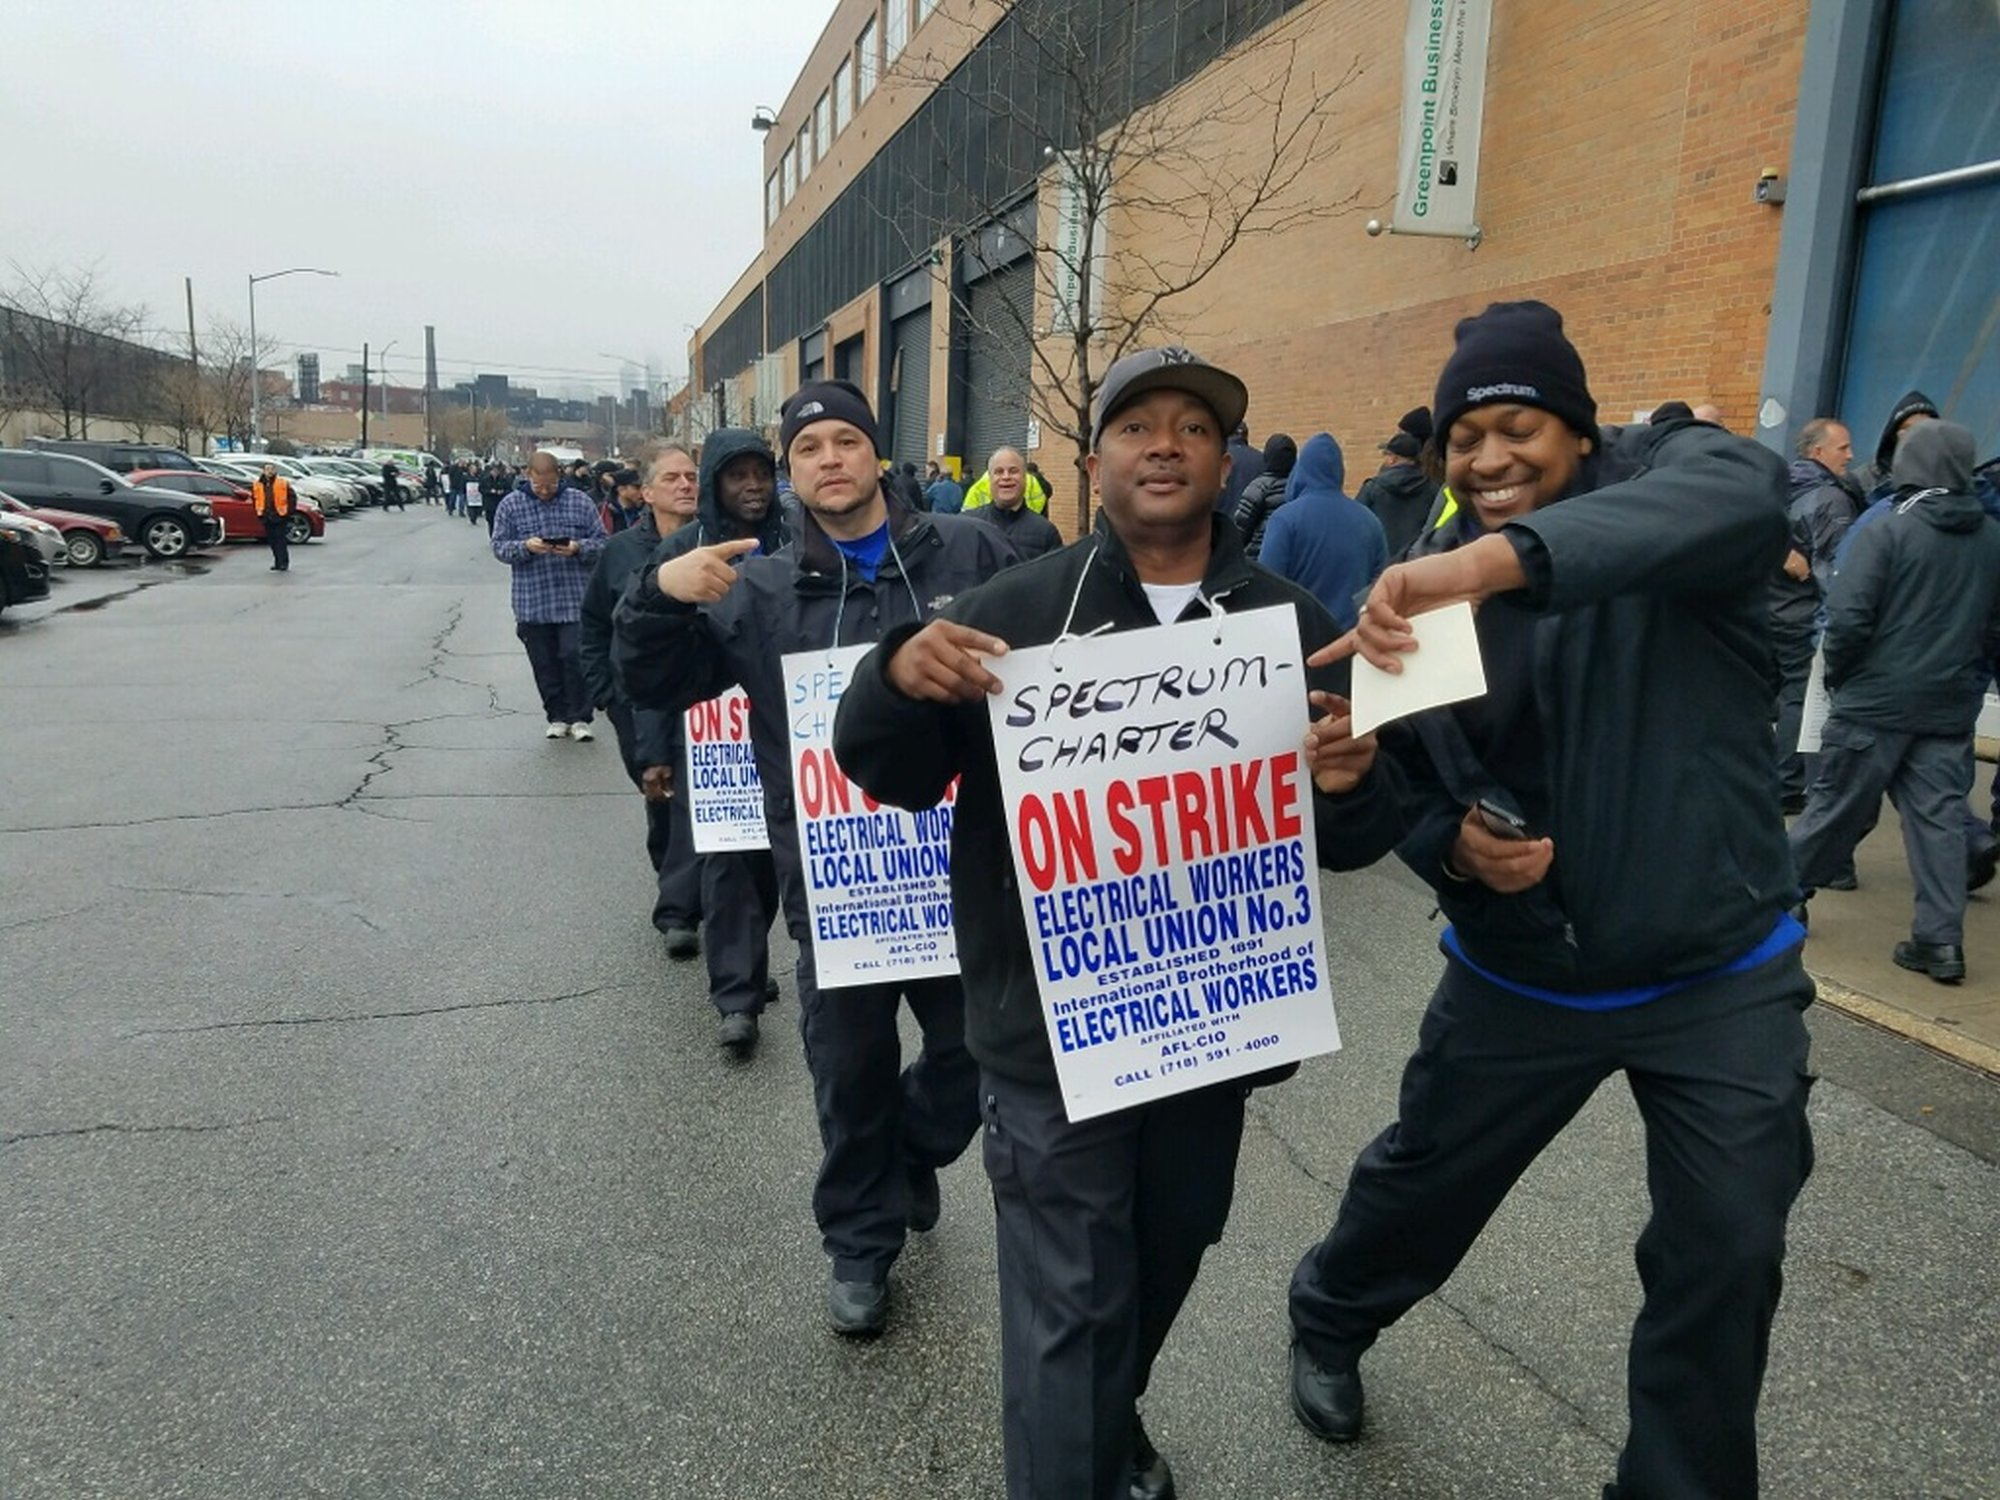 Time Warner Cable (Spectrum) workers striking for three months and